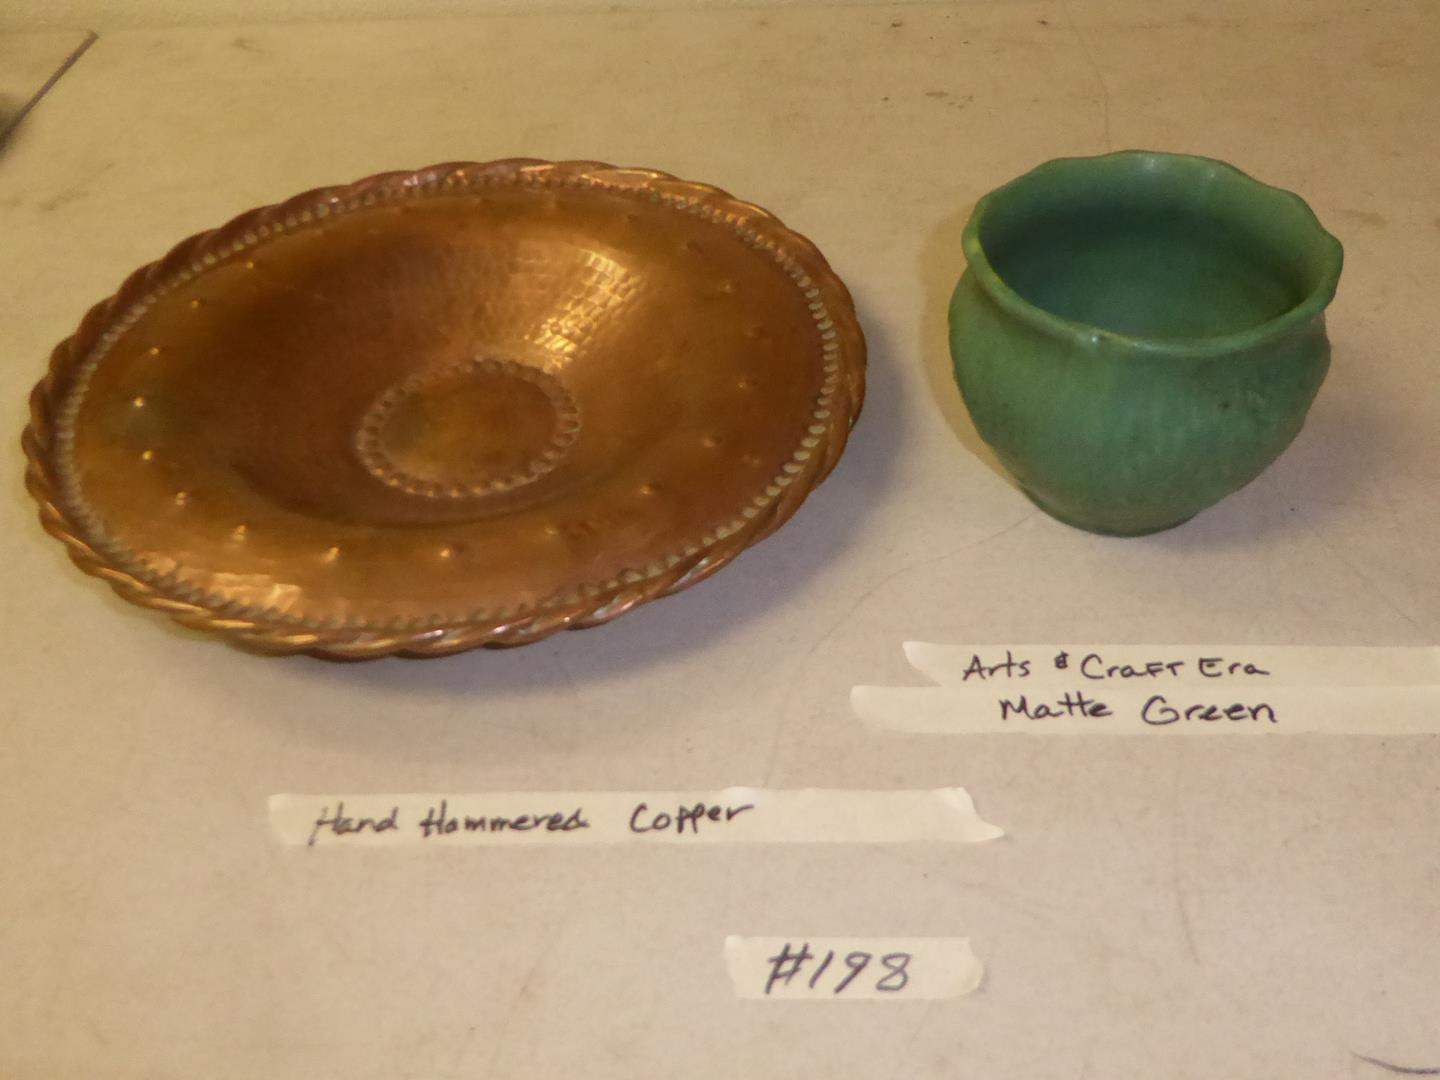 Lot # 198 - Hand Hammered Copper Wall Hanging Art Bowl & Small Arts and Crafts Era Matte Green Pottery Planter (main image)